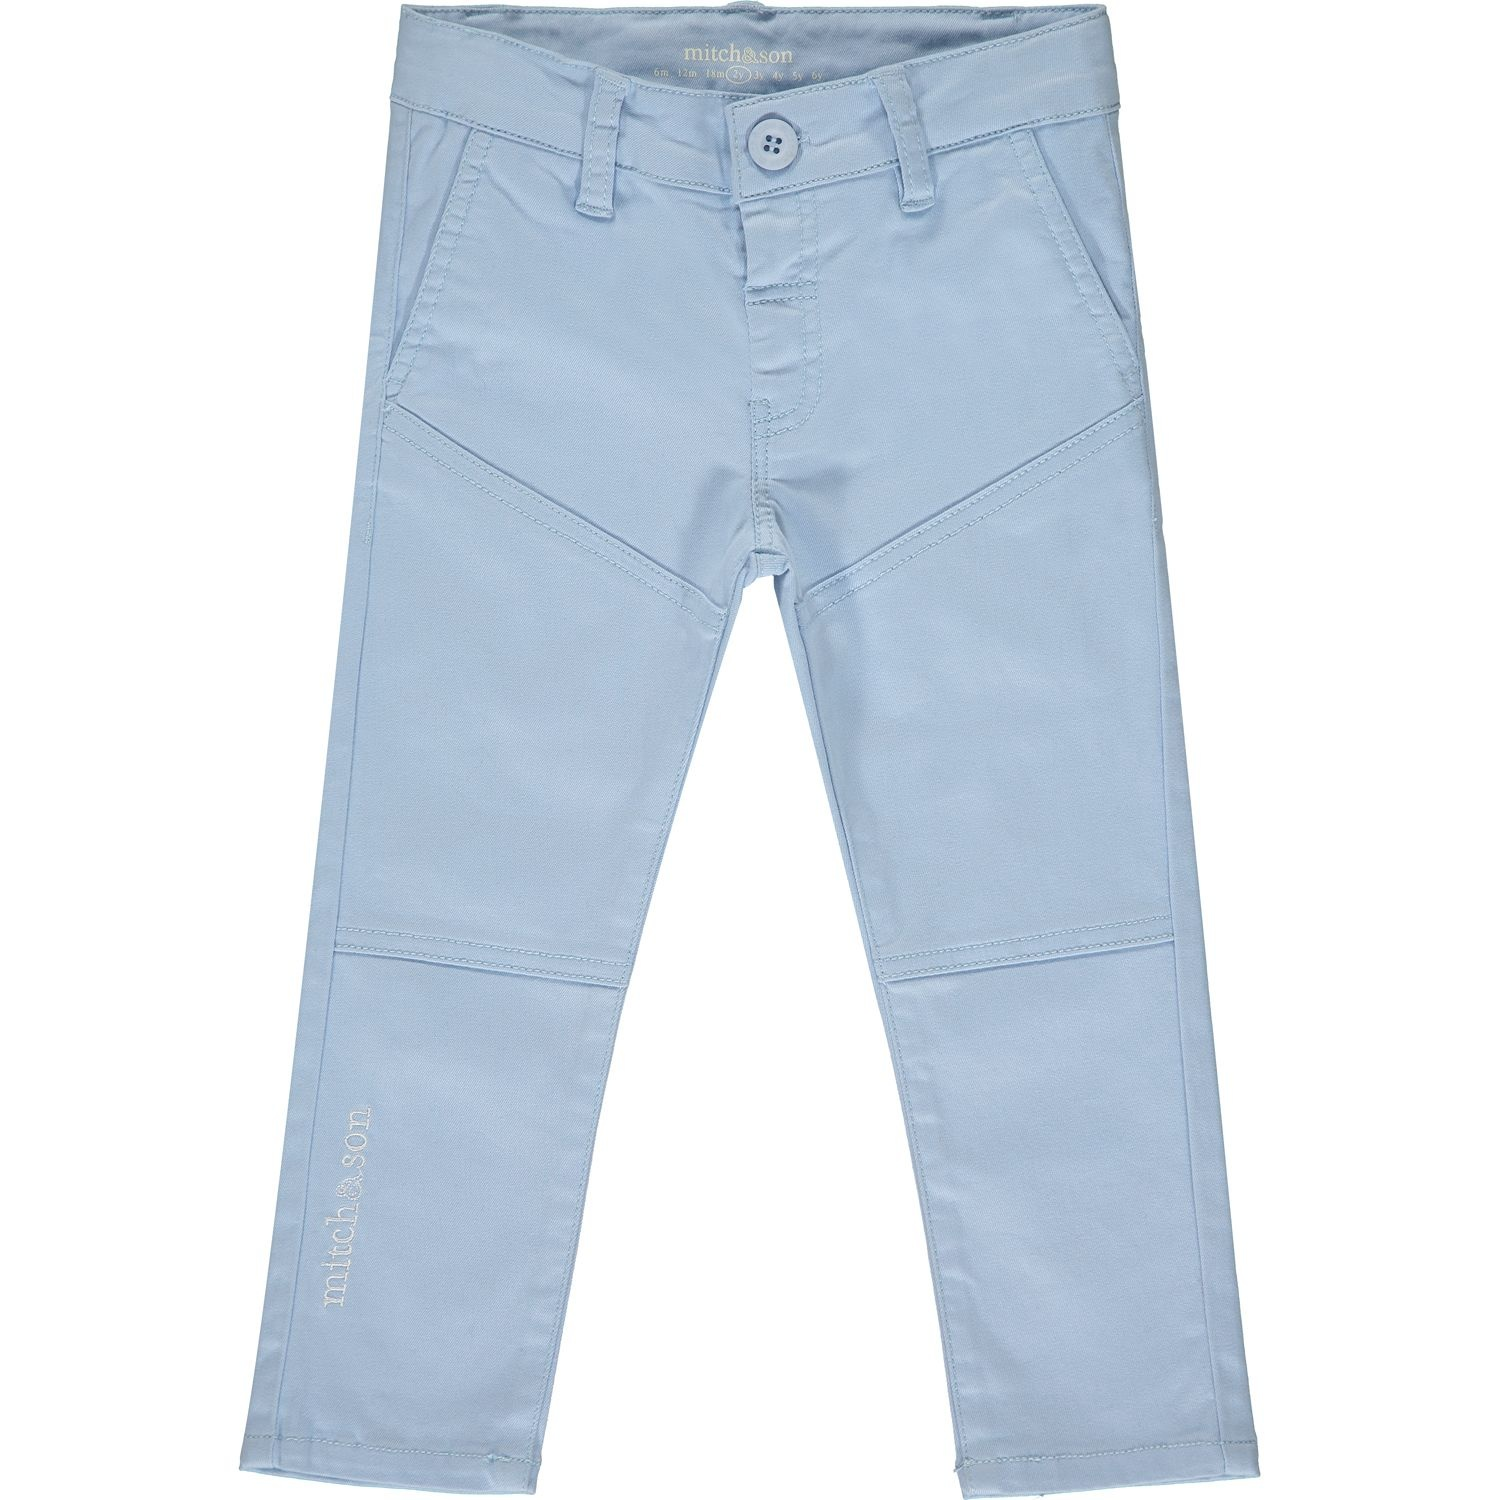 Mitch and Son Mitch & Son Kingston Pale Blue Twill Trouser